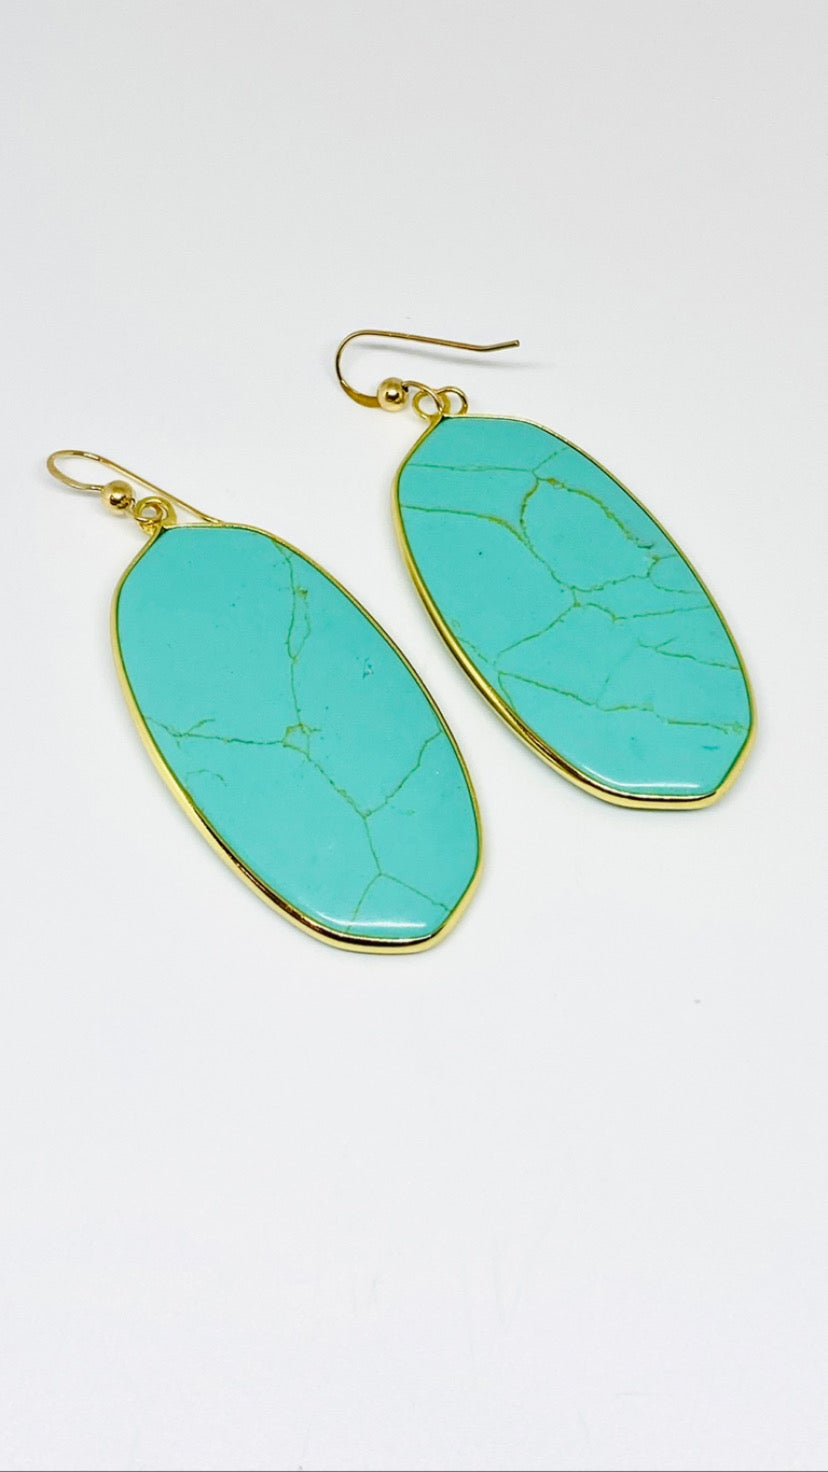 Image of Colorful Earrings